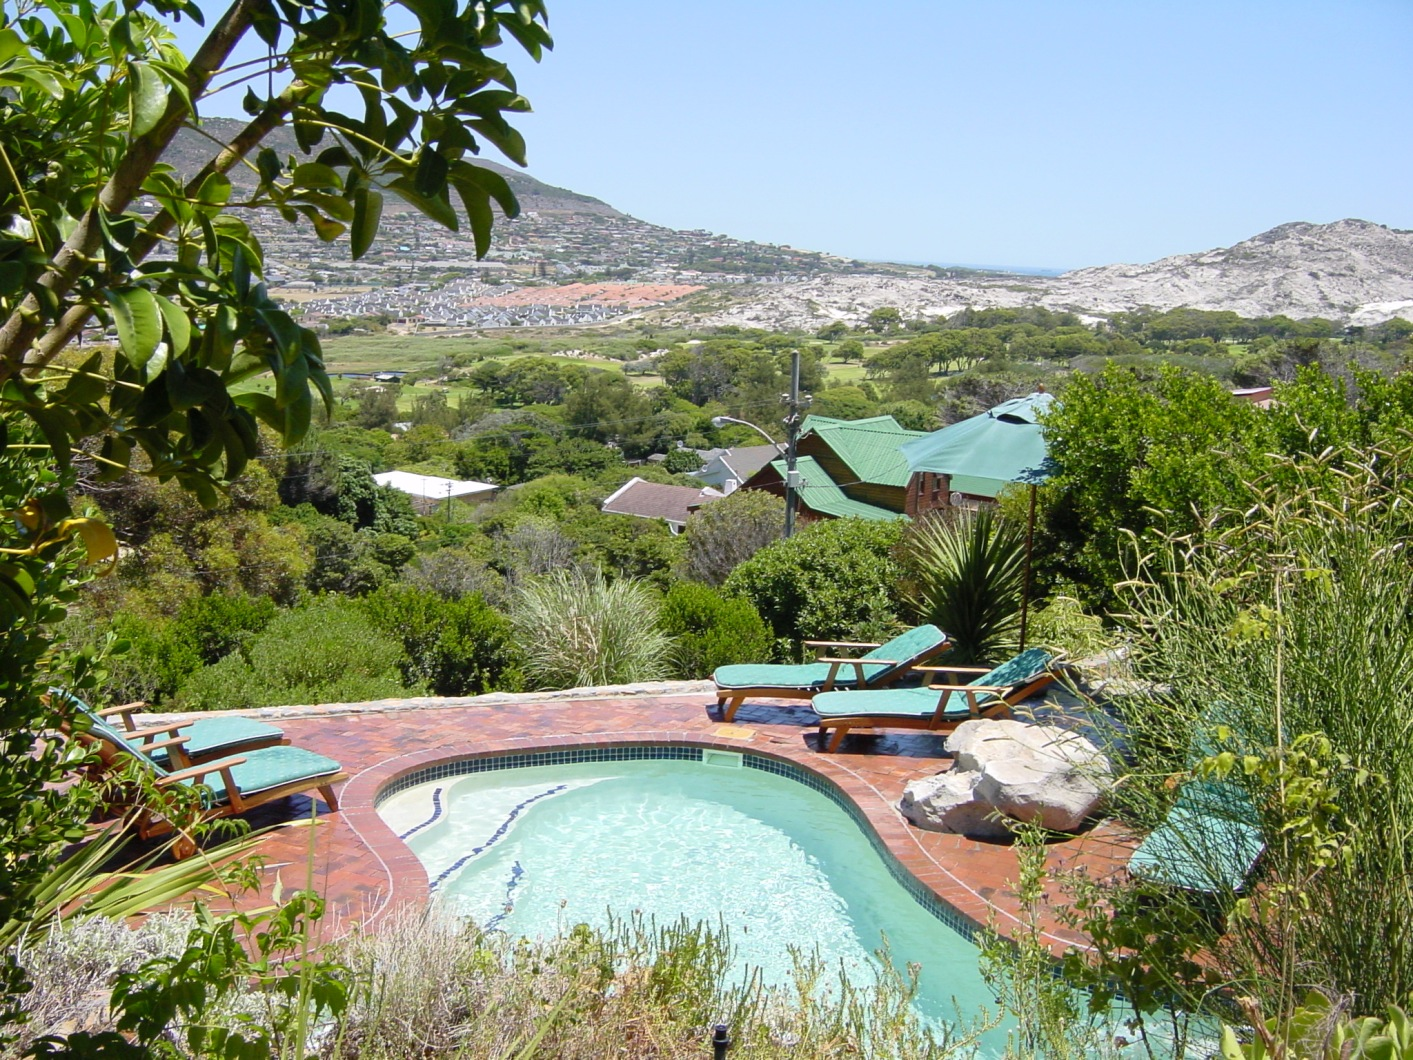 View from jacuzzi across pool